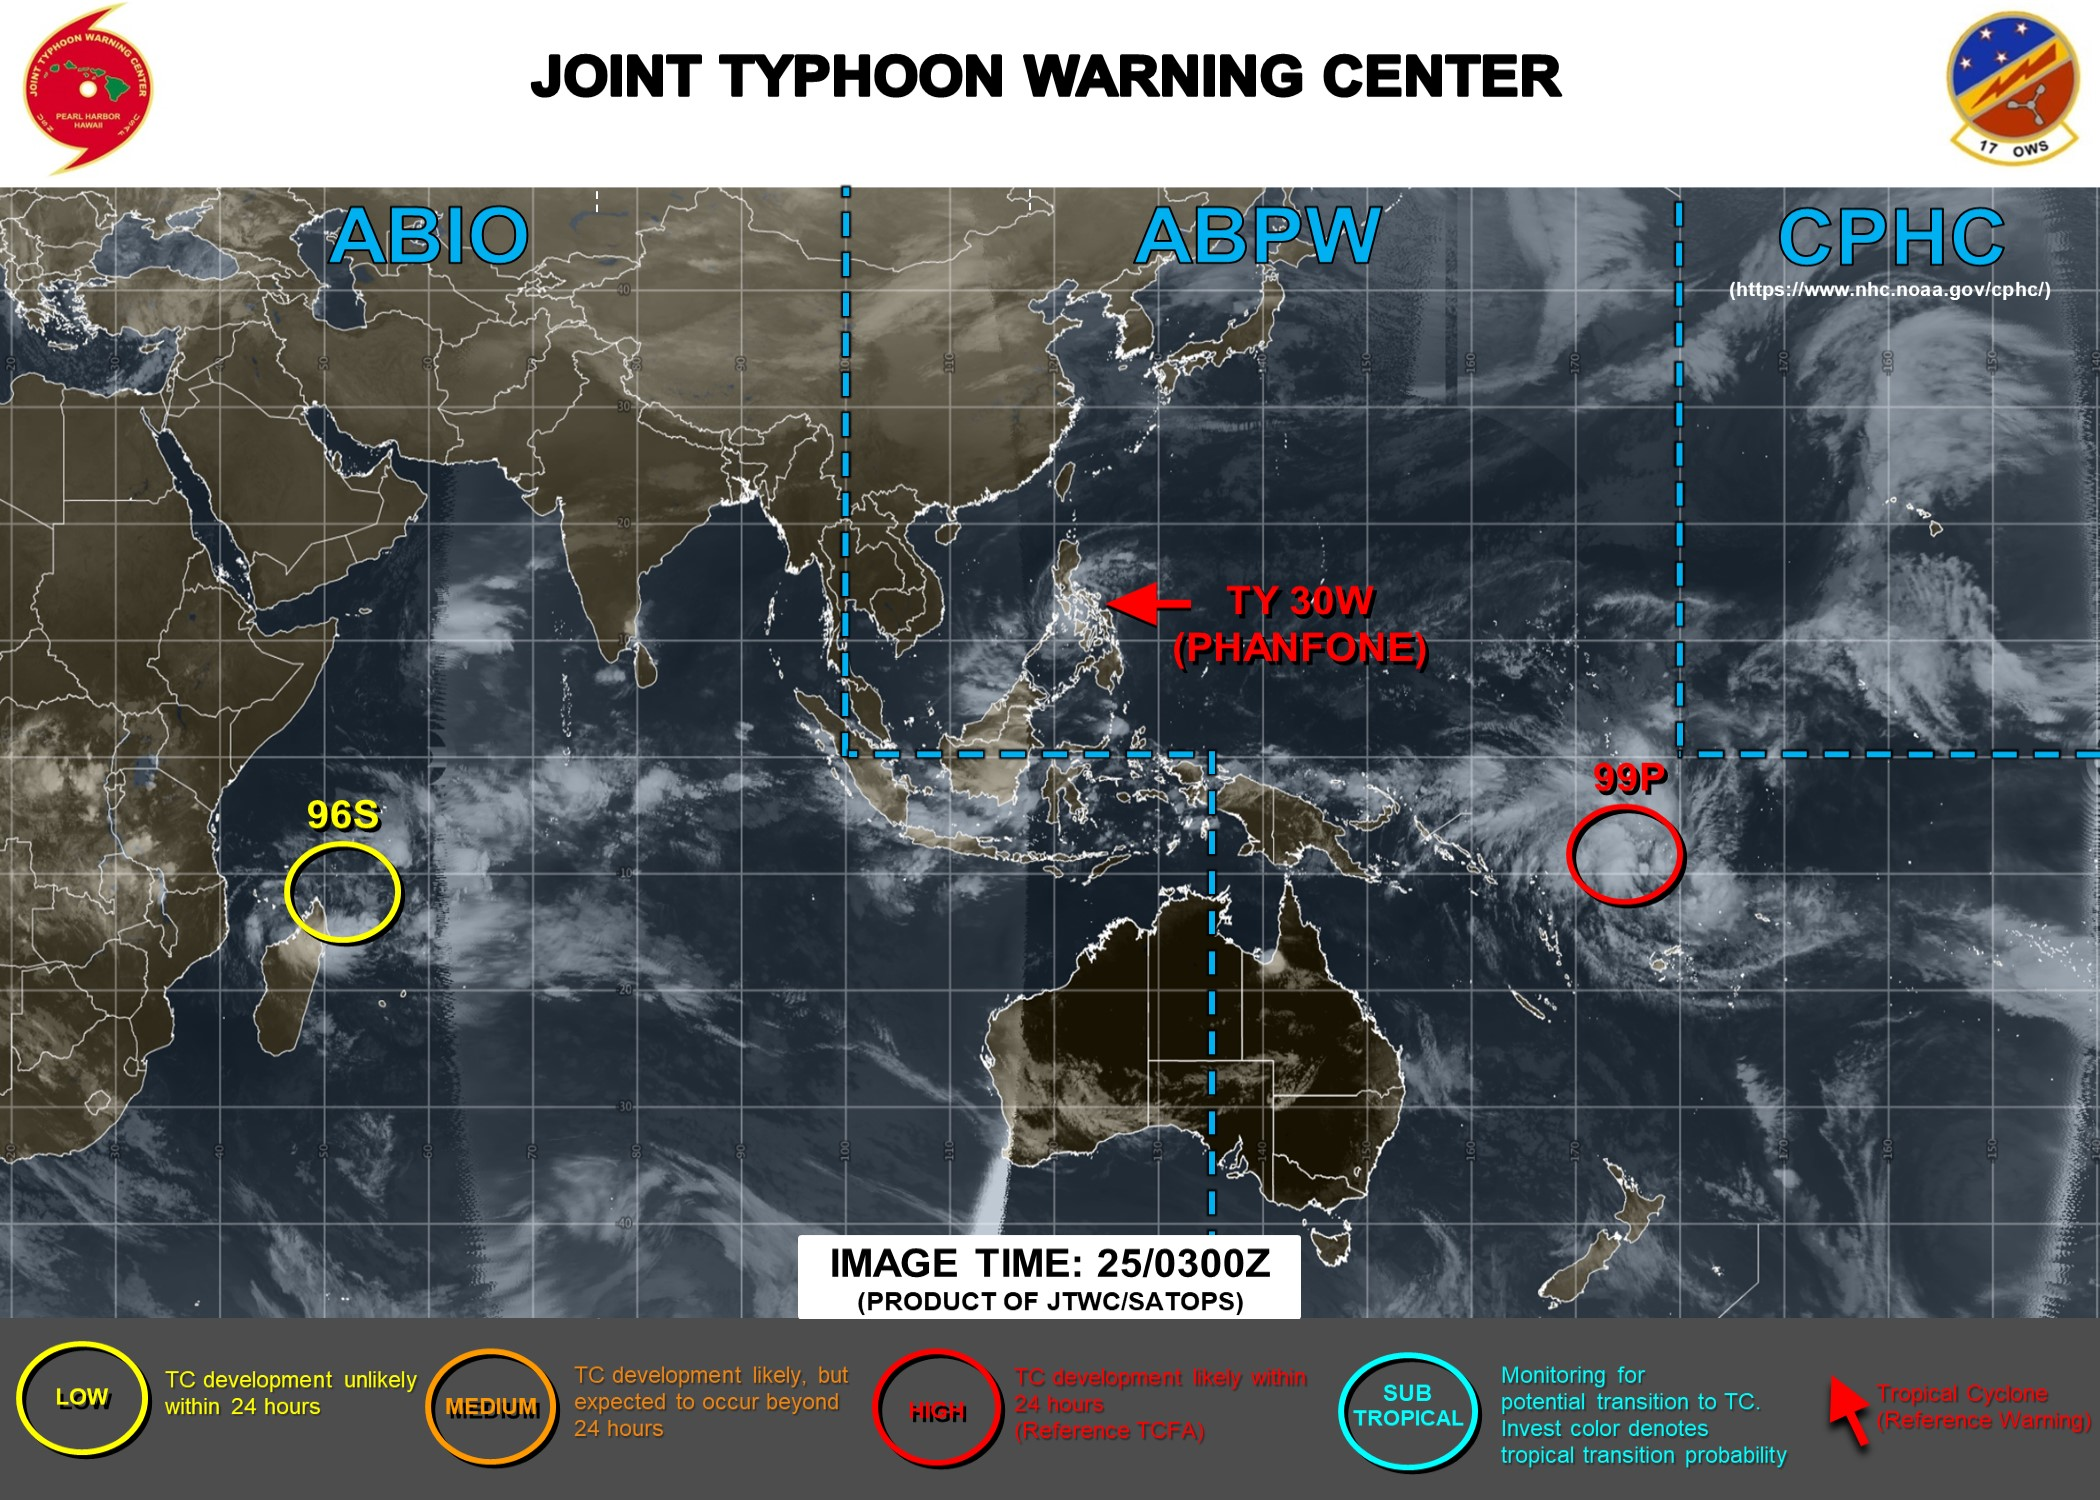 Typhoon Phanfone(30W) near Cat 3.  Invest 99P: Tropical Cyclone Formation Alert.